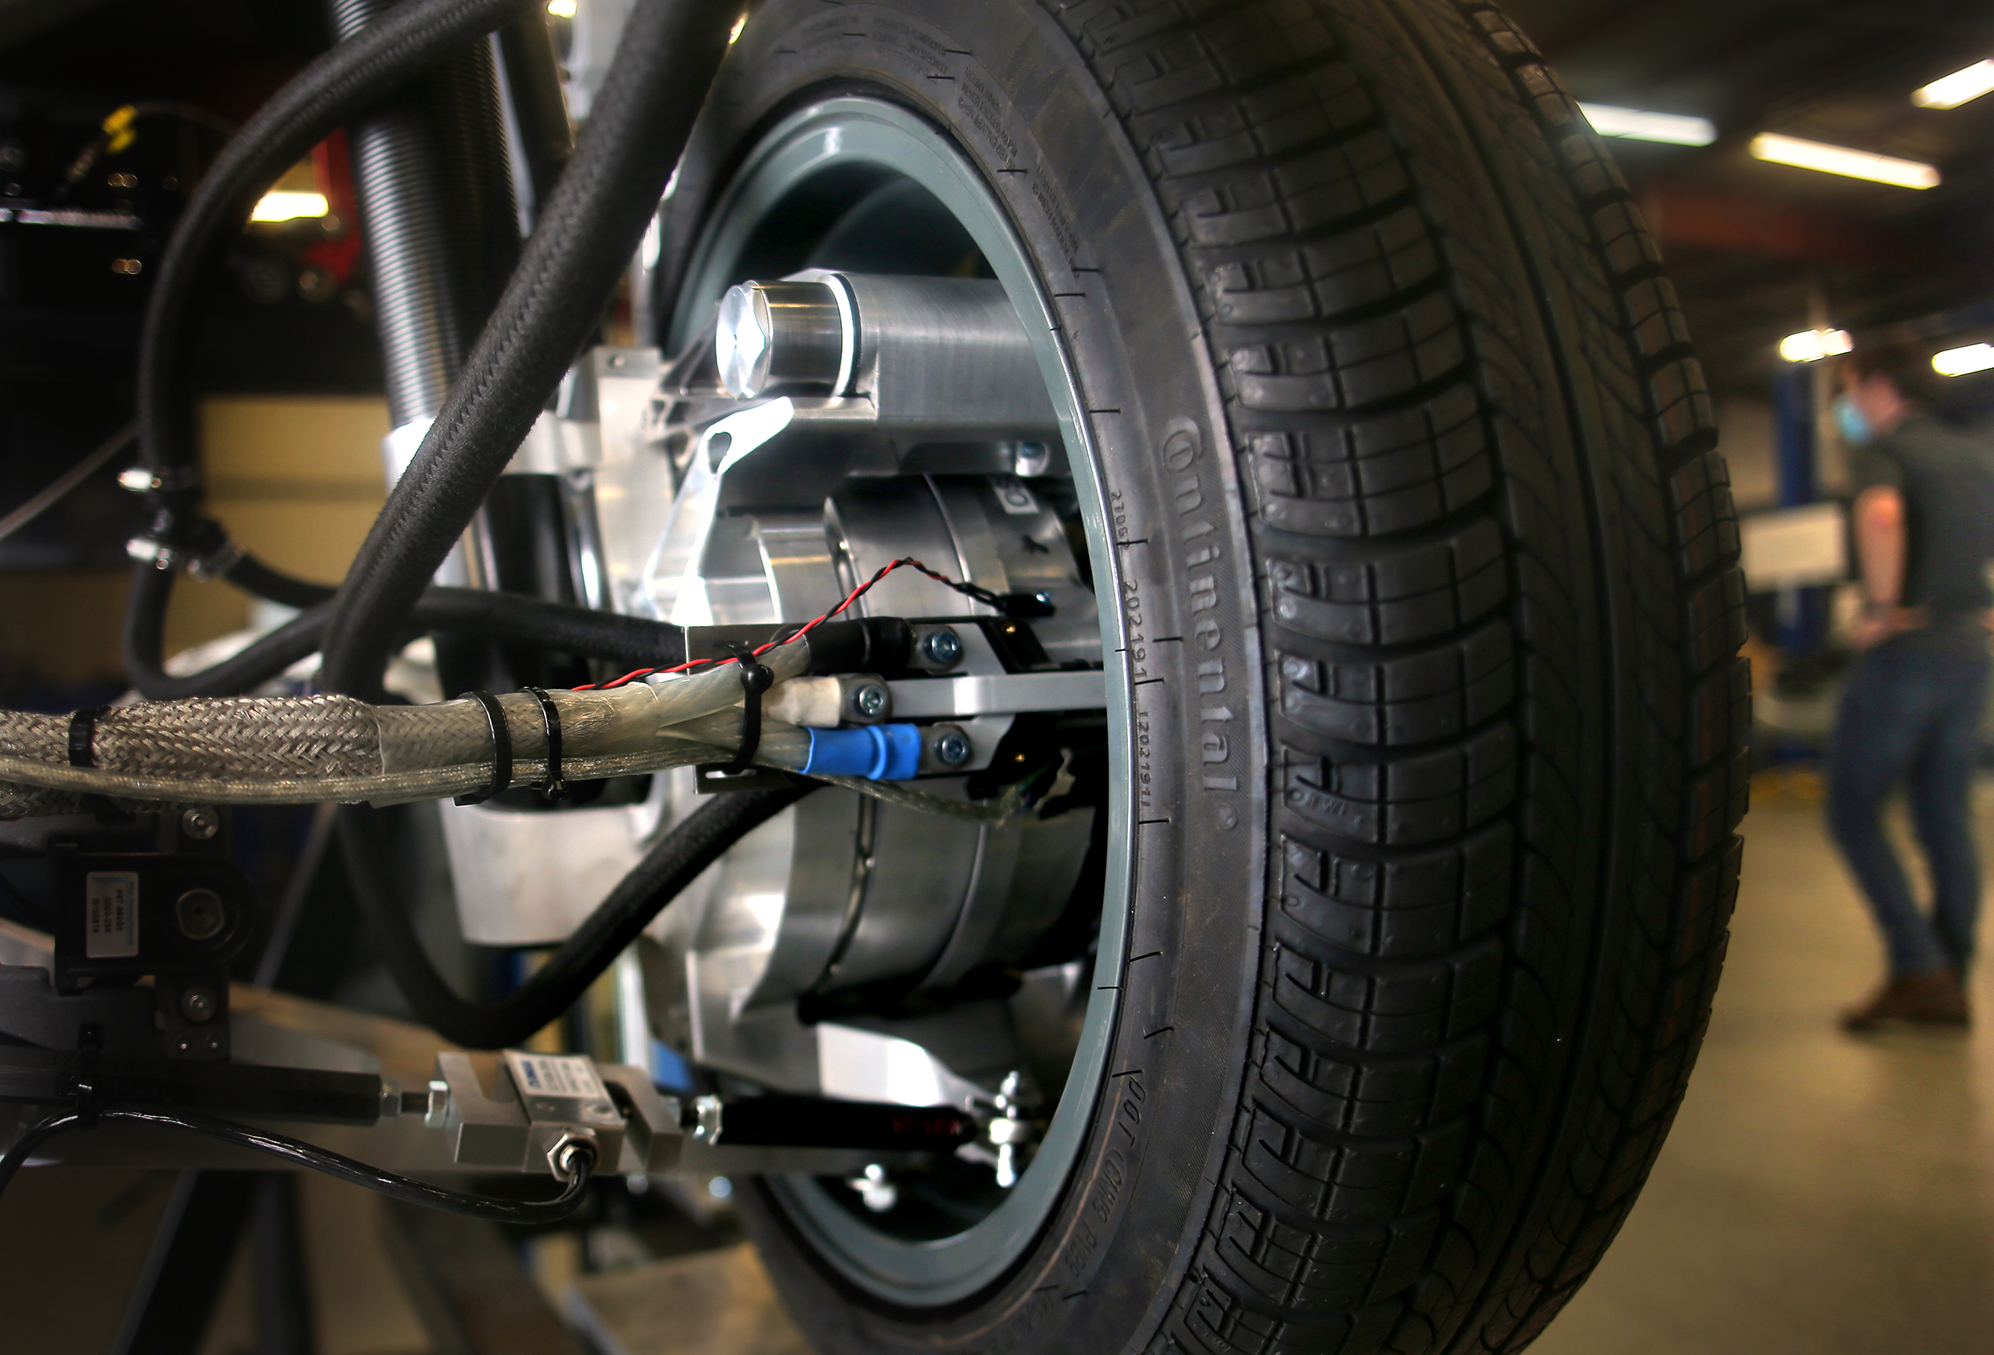 An Indigo wheel is displayed showing the active suspension technology.